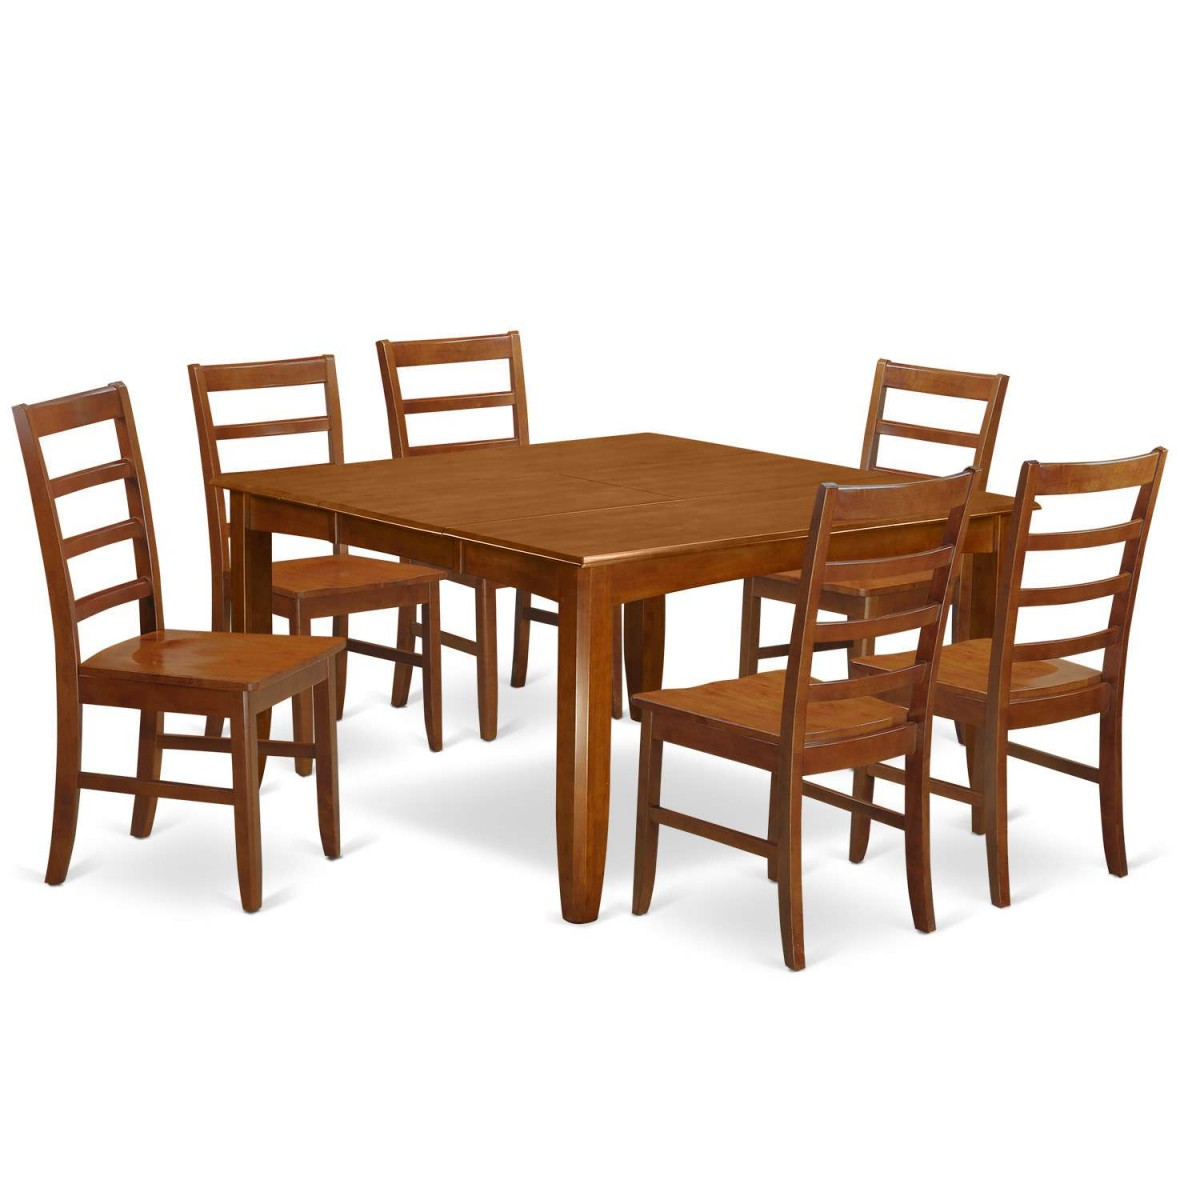 9 Piece Dining Table Set For 8 Dining Room Table With 8: East West Furniture Parfait 9 Piece Dining Room Set